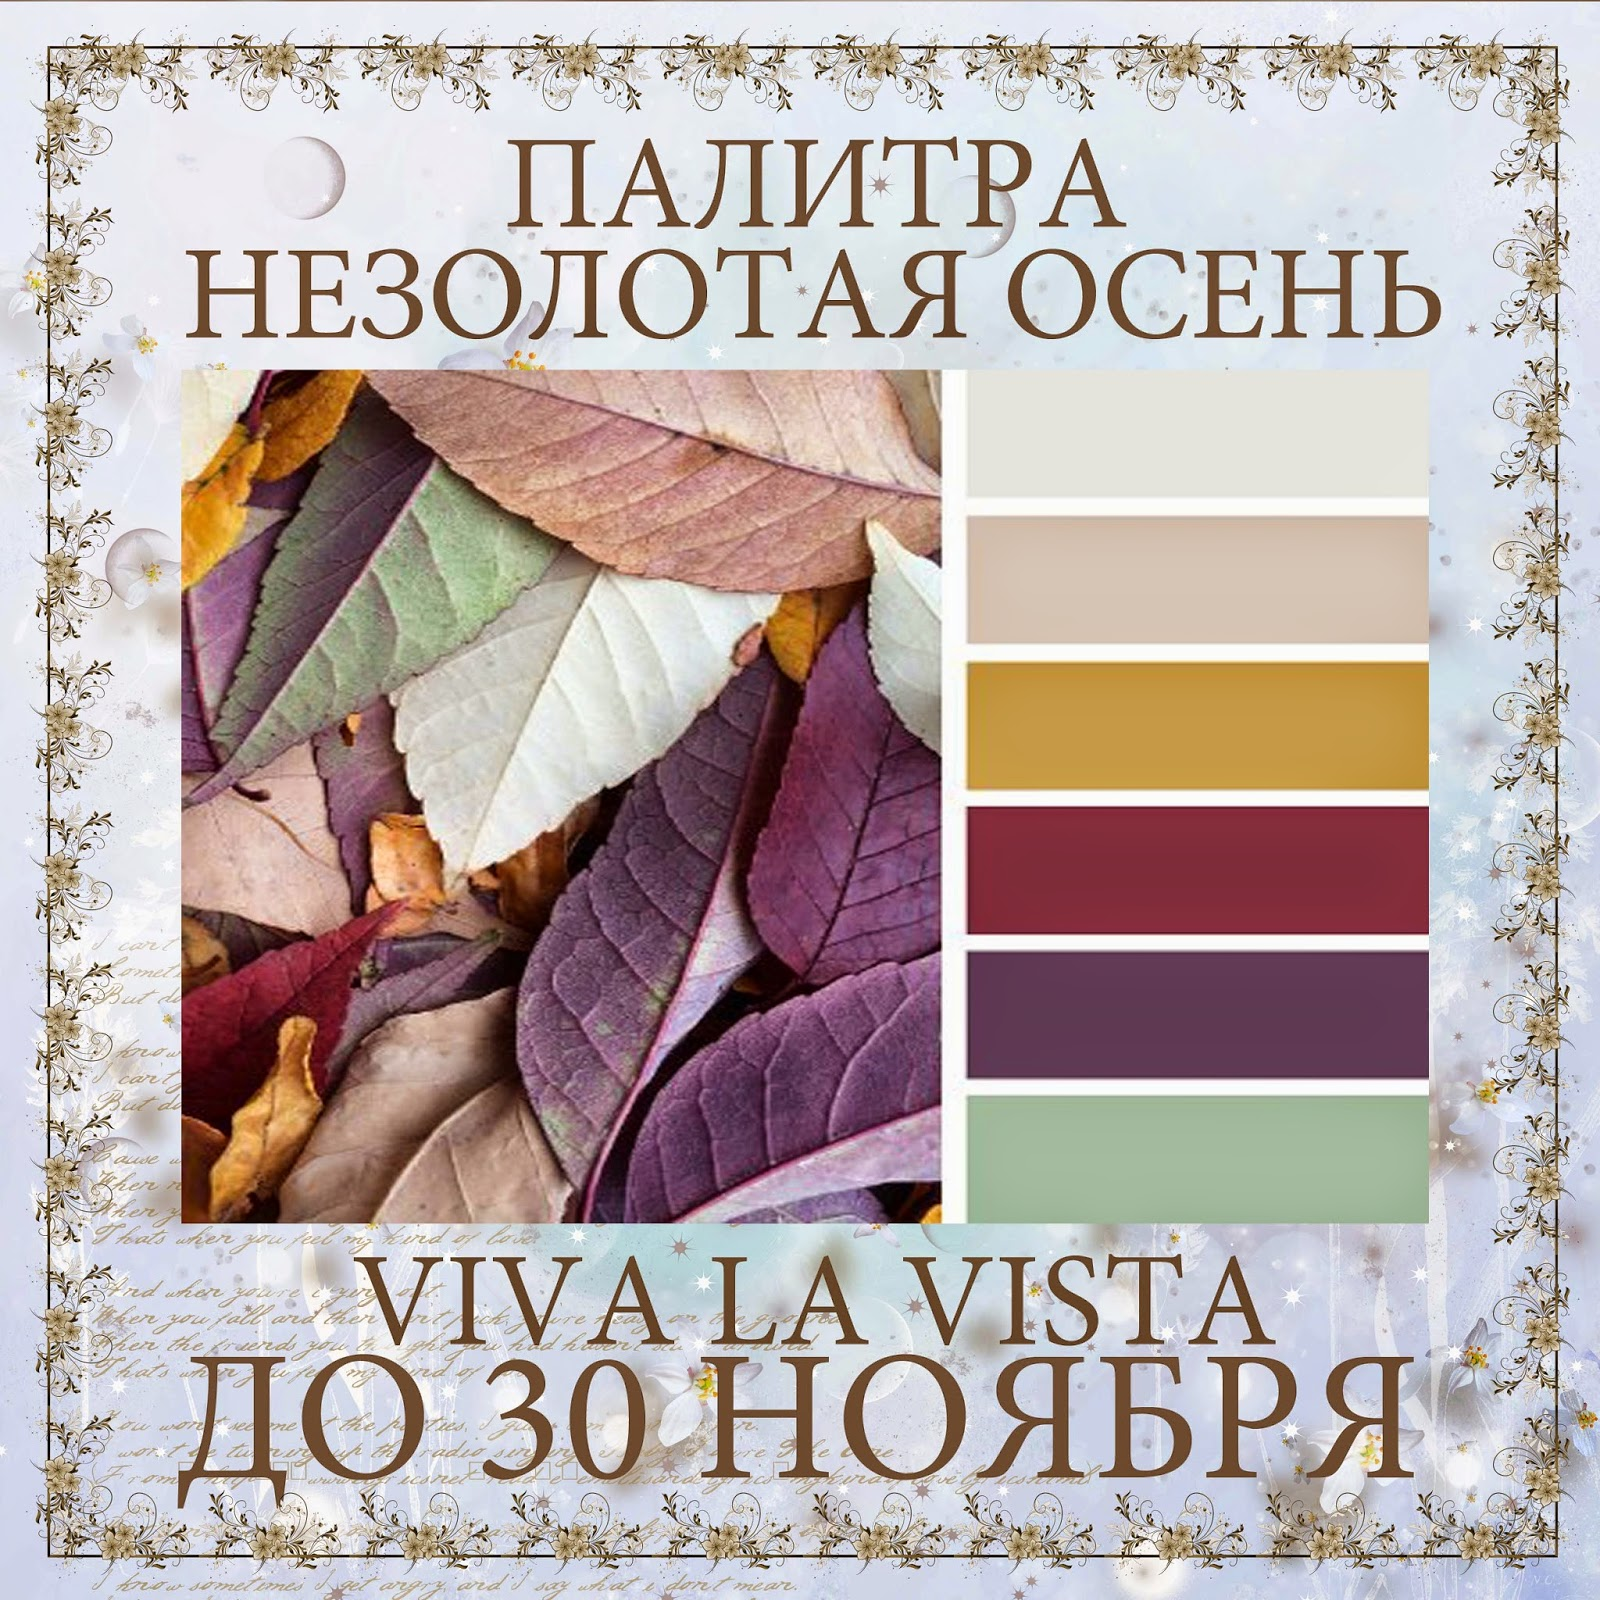 http://vlvista.blogspot.ru/2014/10/blog-post_27.html